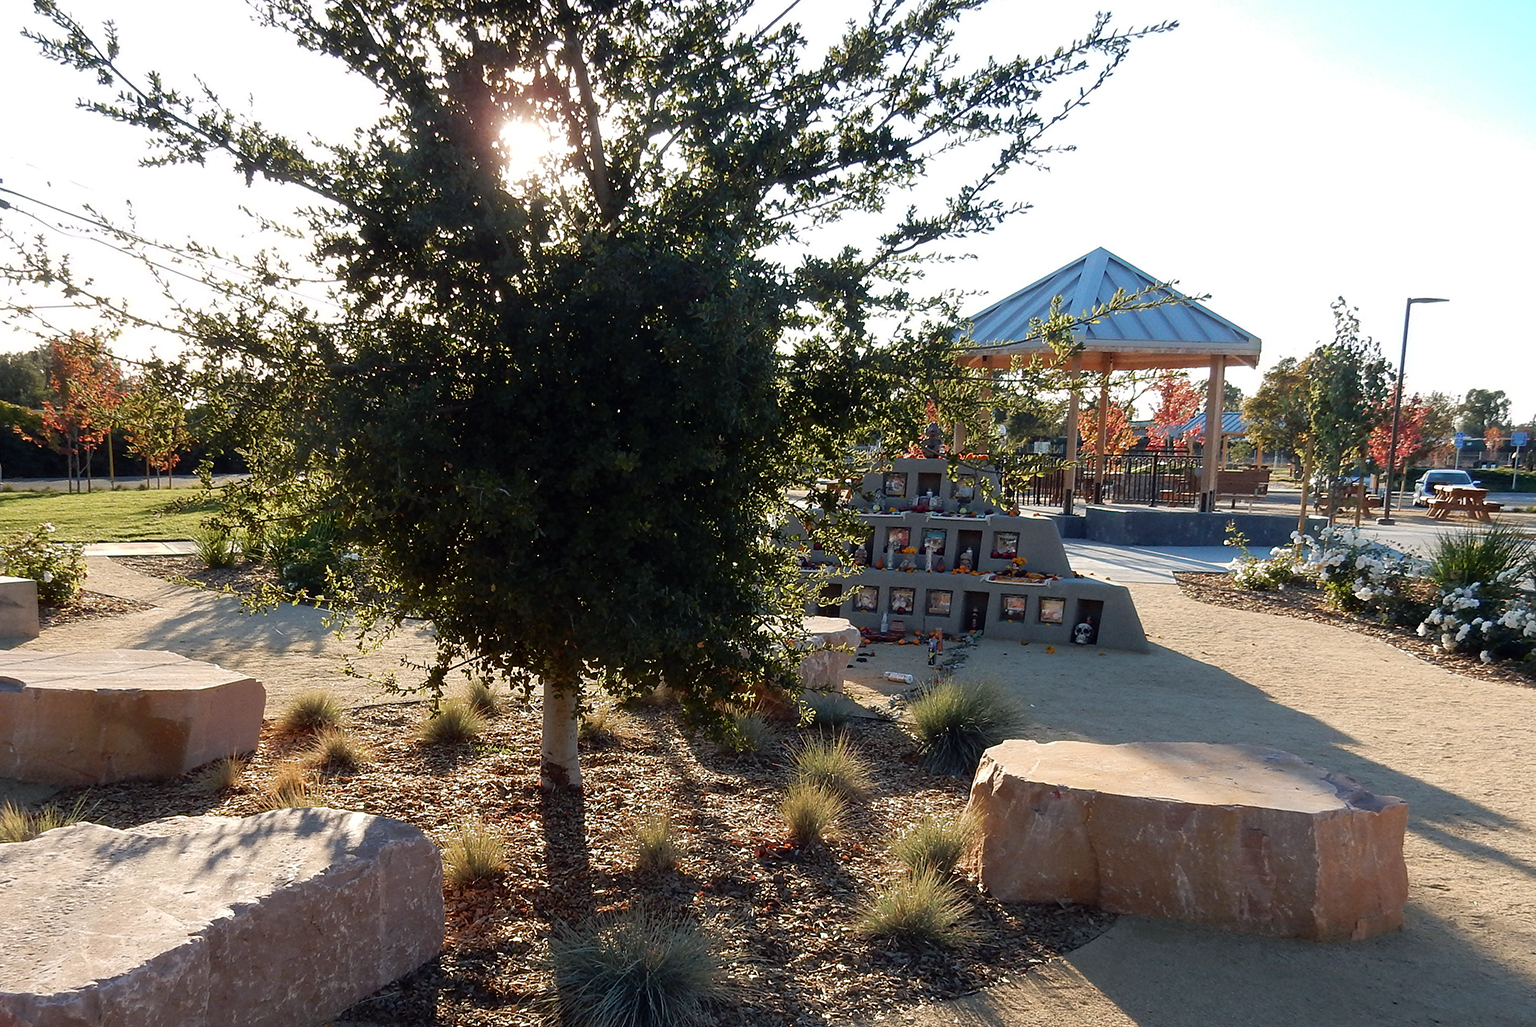 Andy's Unity Park